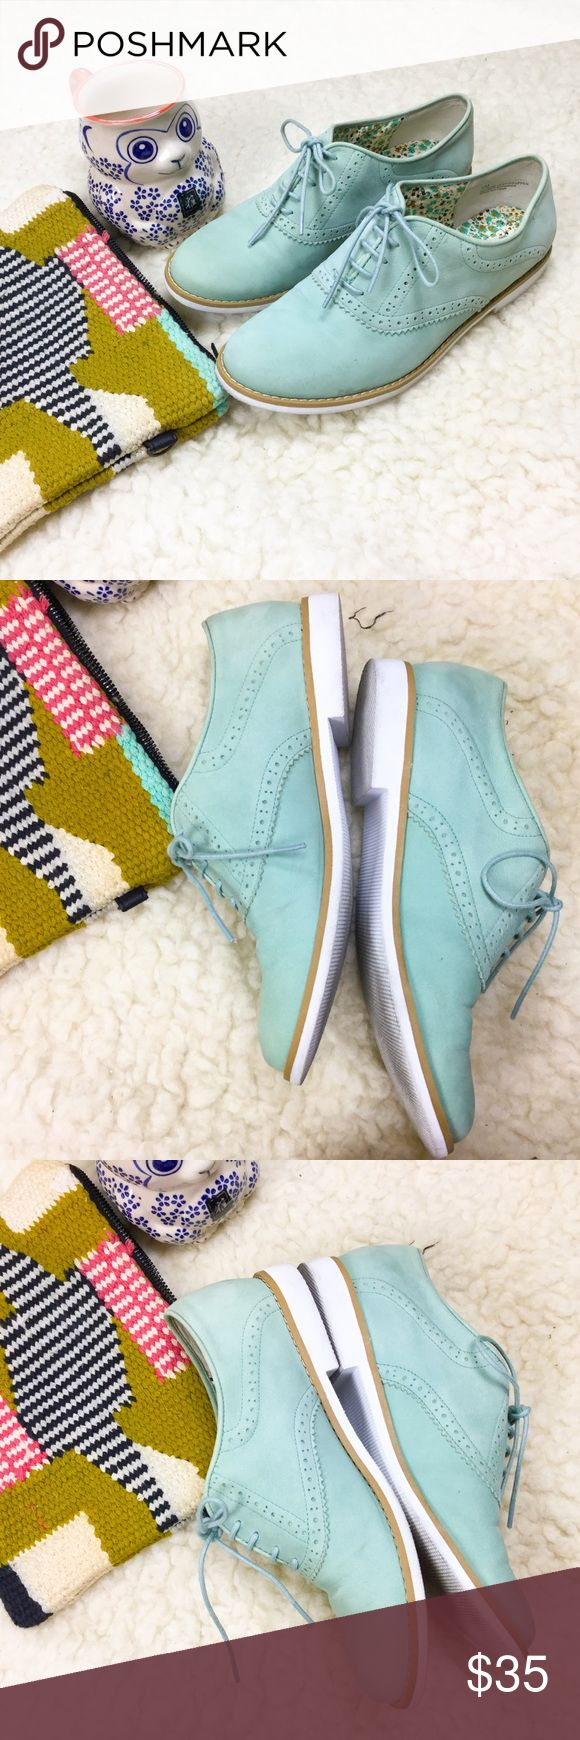 BP real leather mint green nubuck lace oxfords Super cute mint green oxfords from BP (nordstrom brand) in smooth and velvety nubuck (all leather upper, manmade sole), size 6. Preowned in great condition, very faint creasing near toebed. Nordstrom Shoes Flats & Loafers